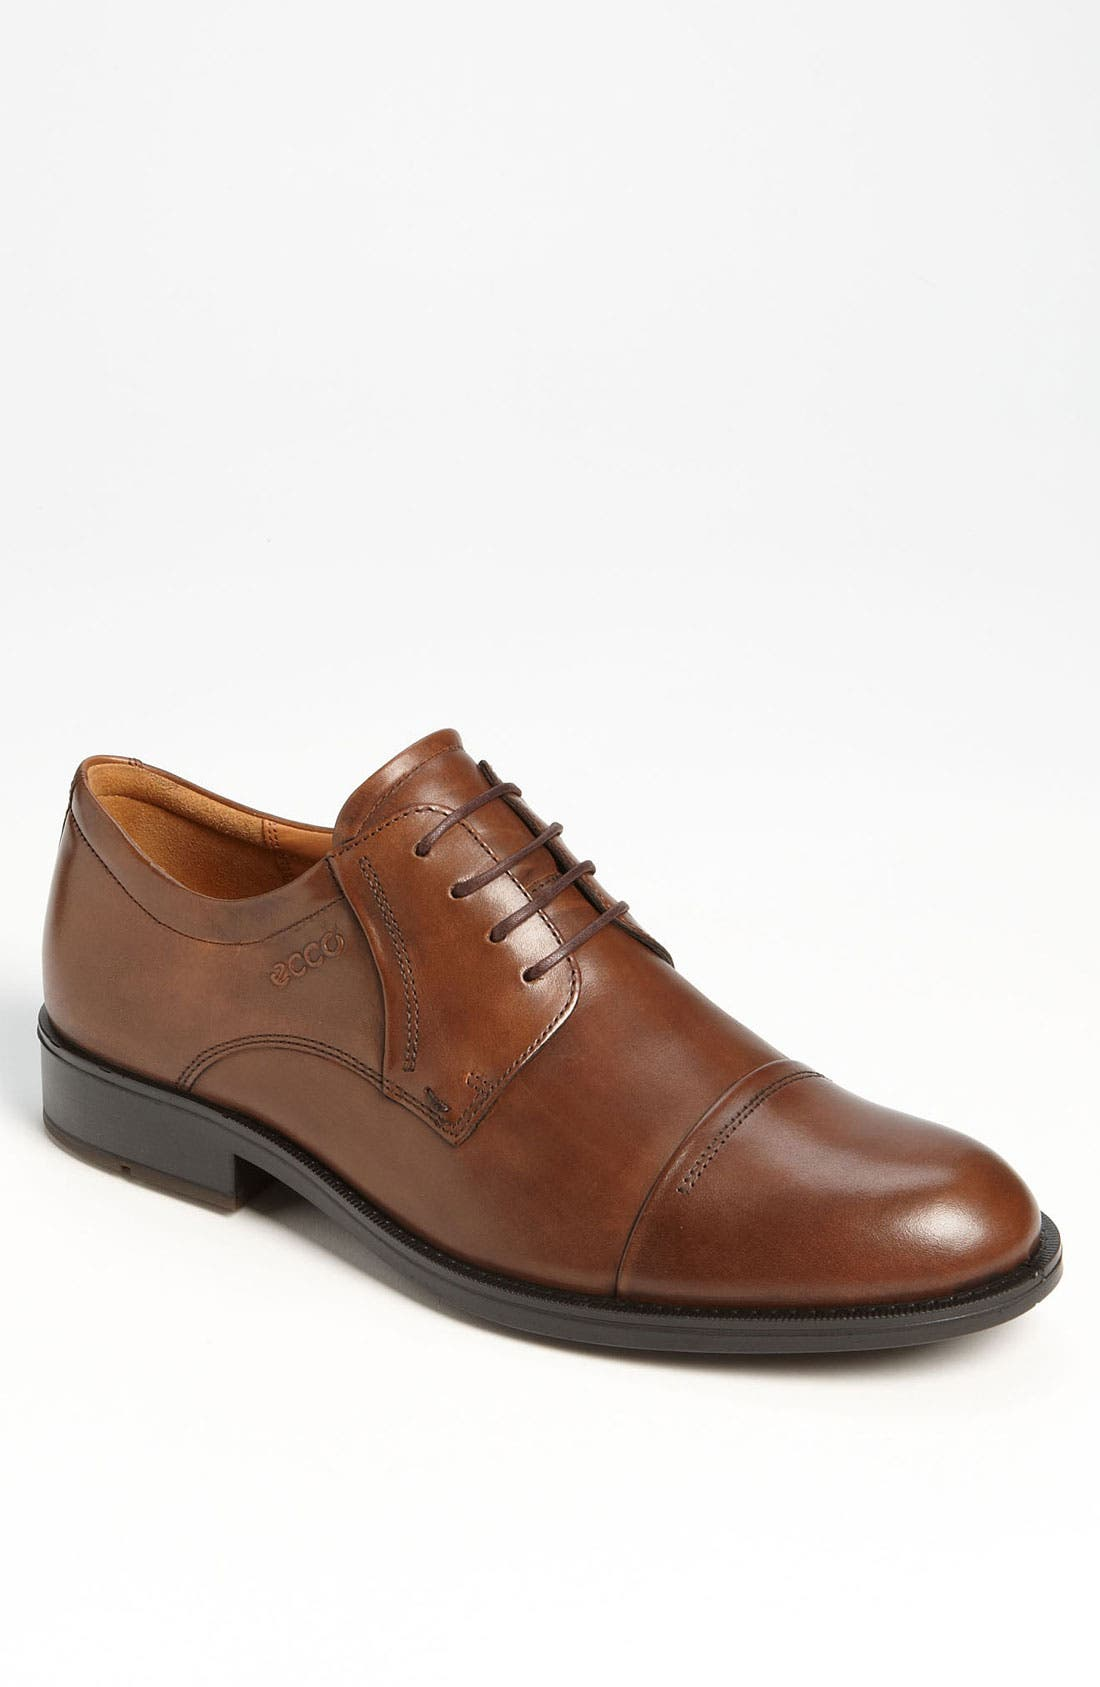 Alternate Image 1 Selected - ECCO 'Birmingham' Cap Toe Derby